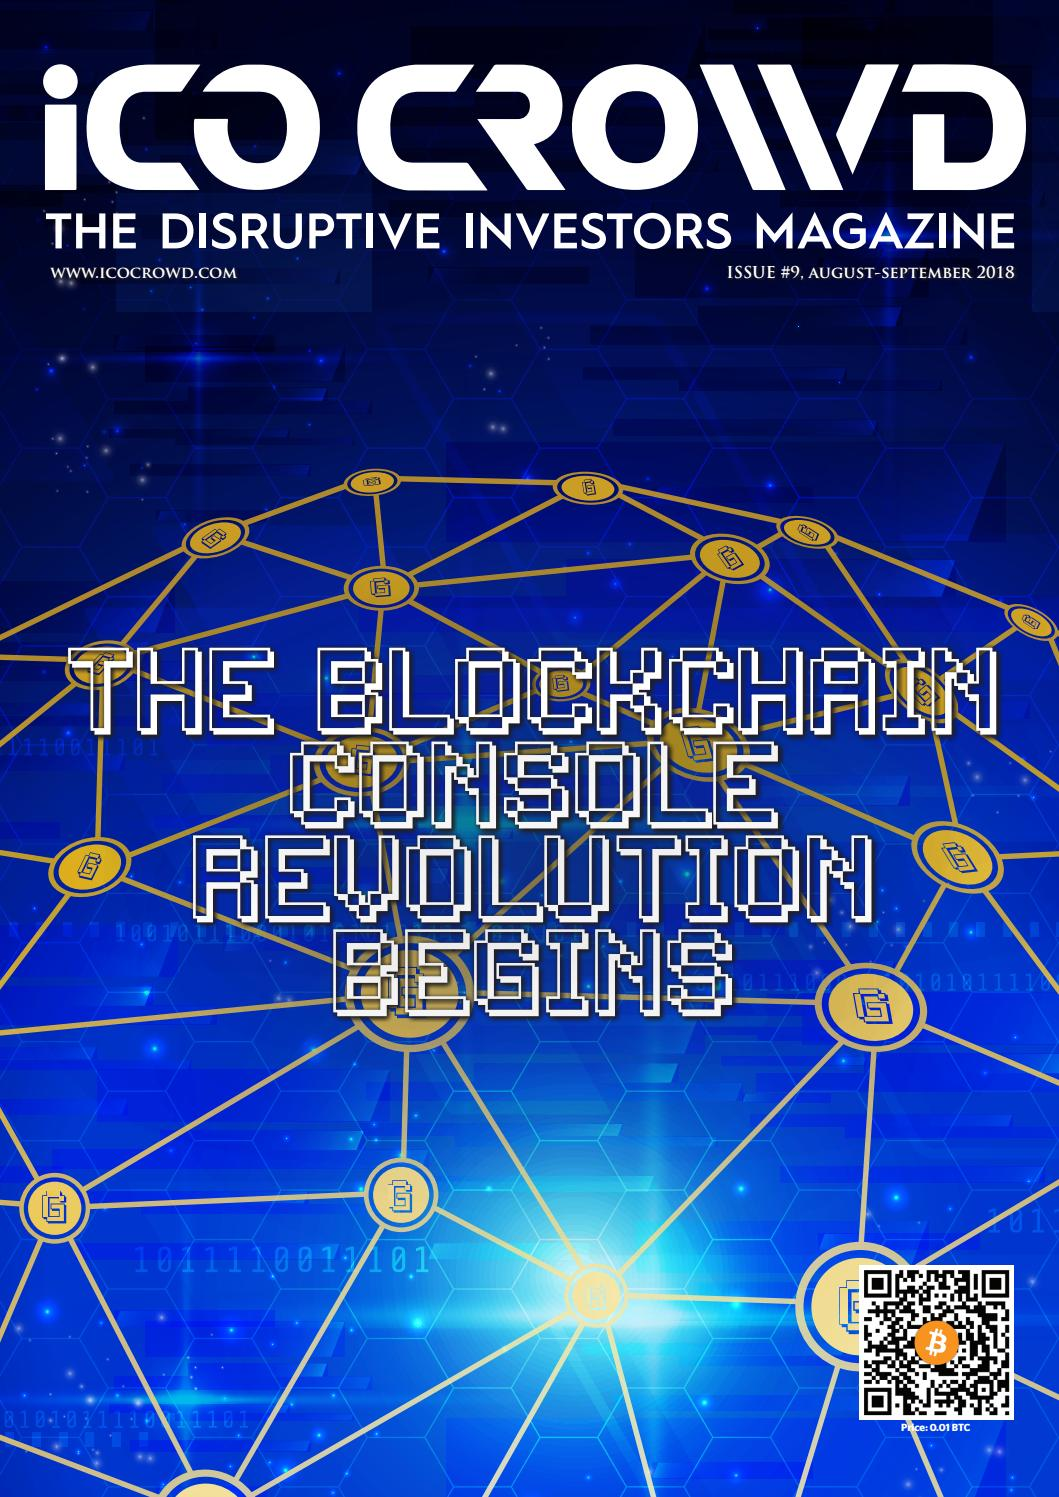 Issue 9: The Blockchain Console Revolution Begins by Ico